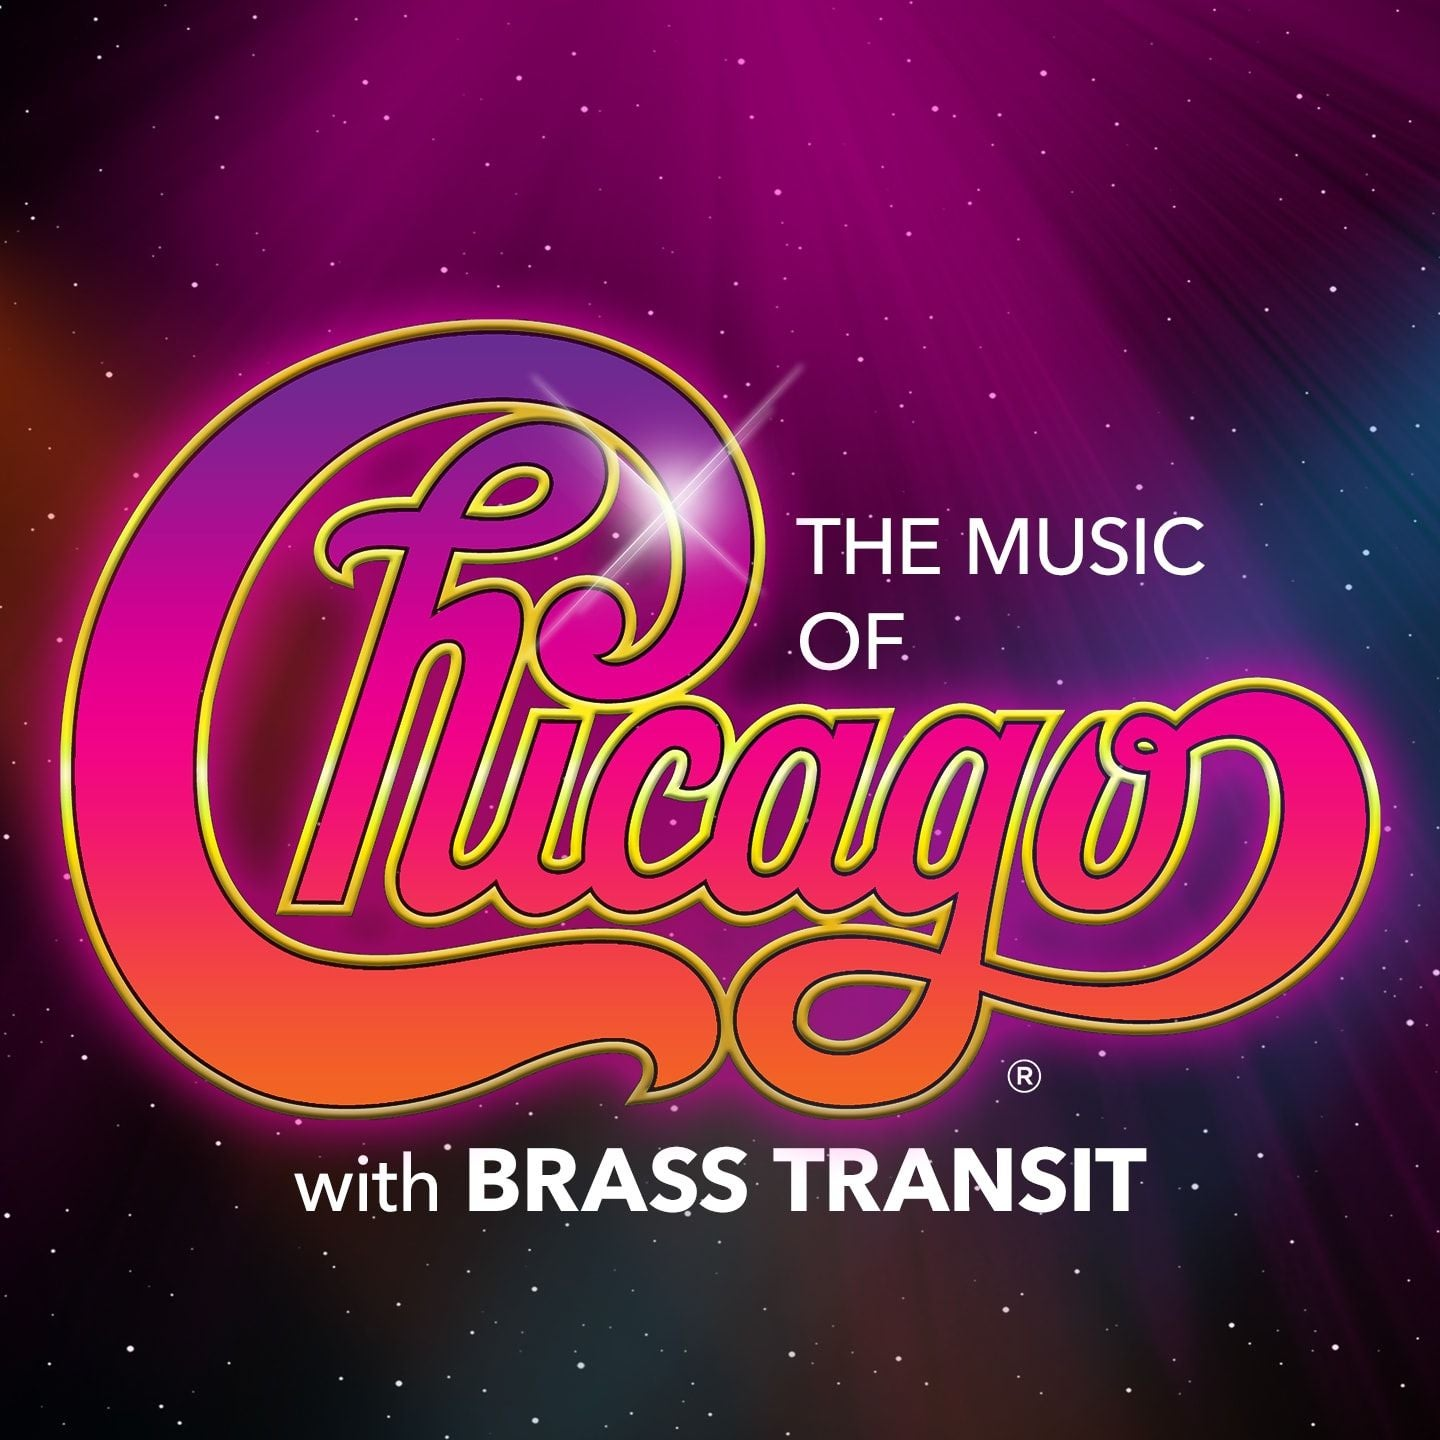 Charlotte Symphony: Brass Transit: The Music of Chicago